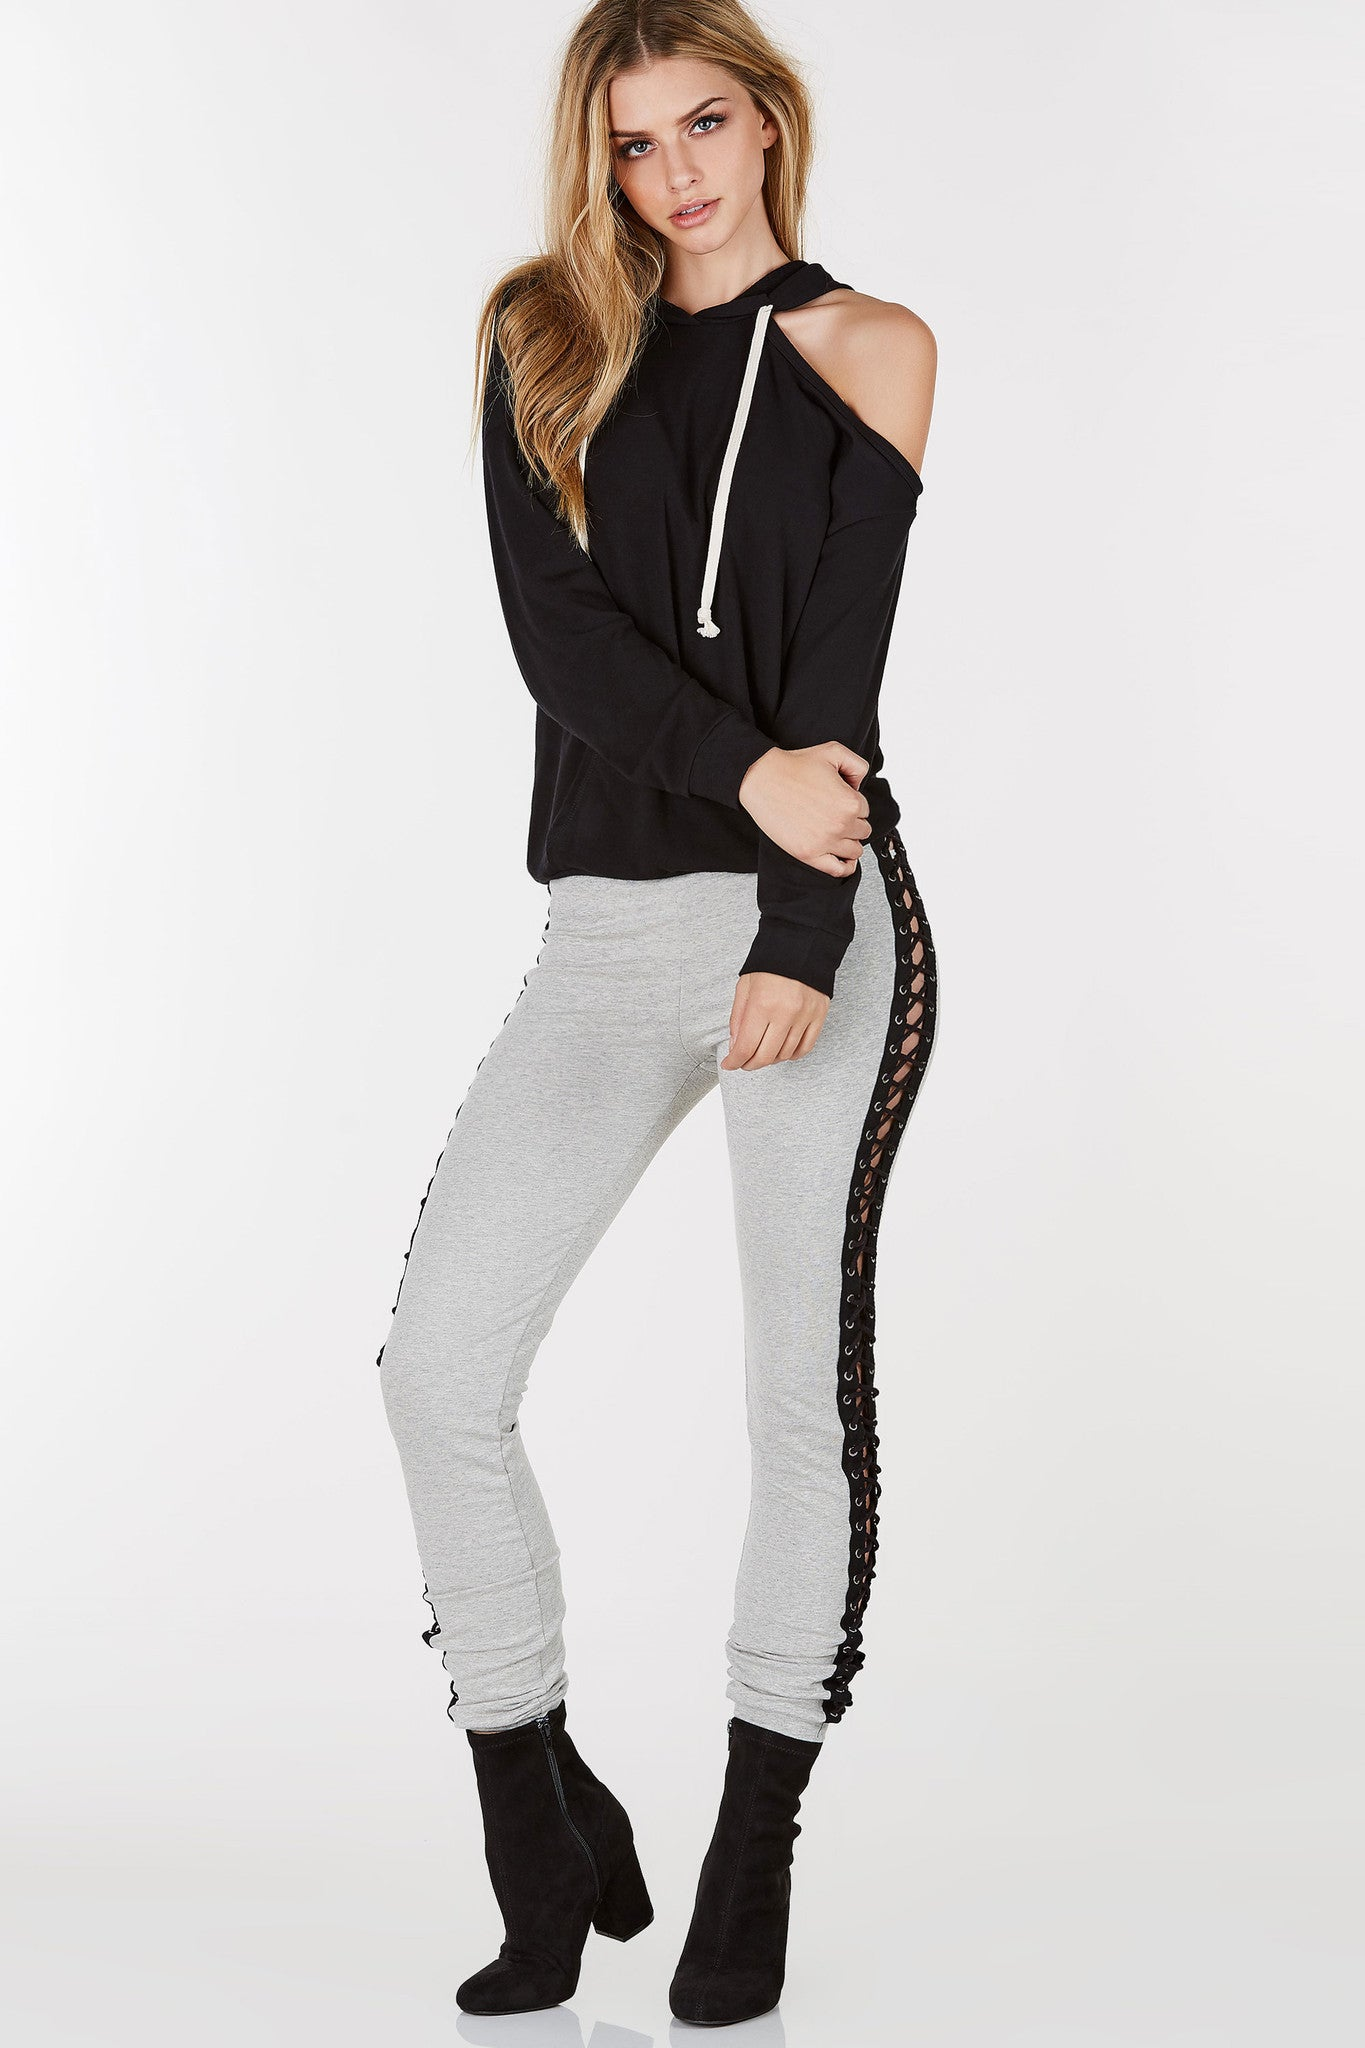 Lightweight hoodie with one cold shoulder. Pair with jeans for a casual look.